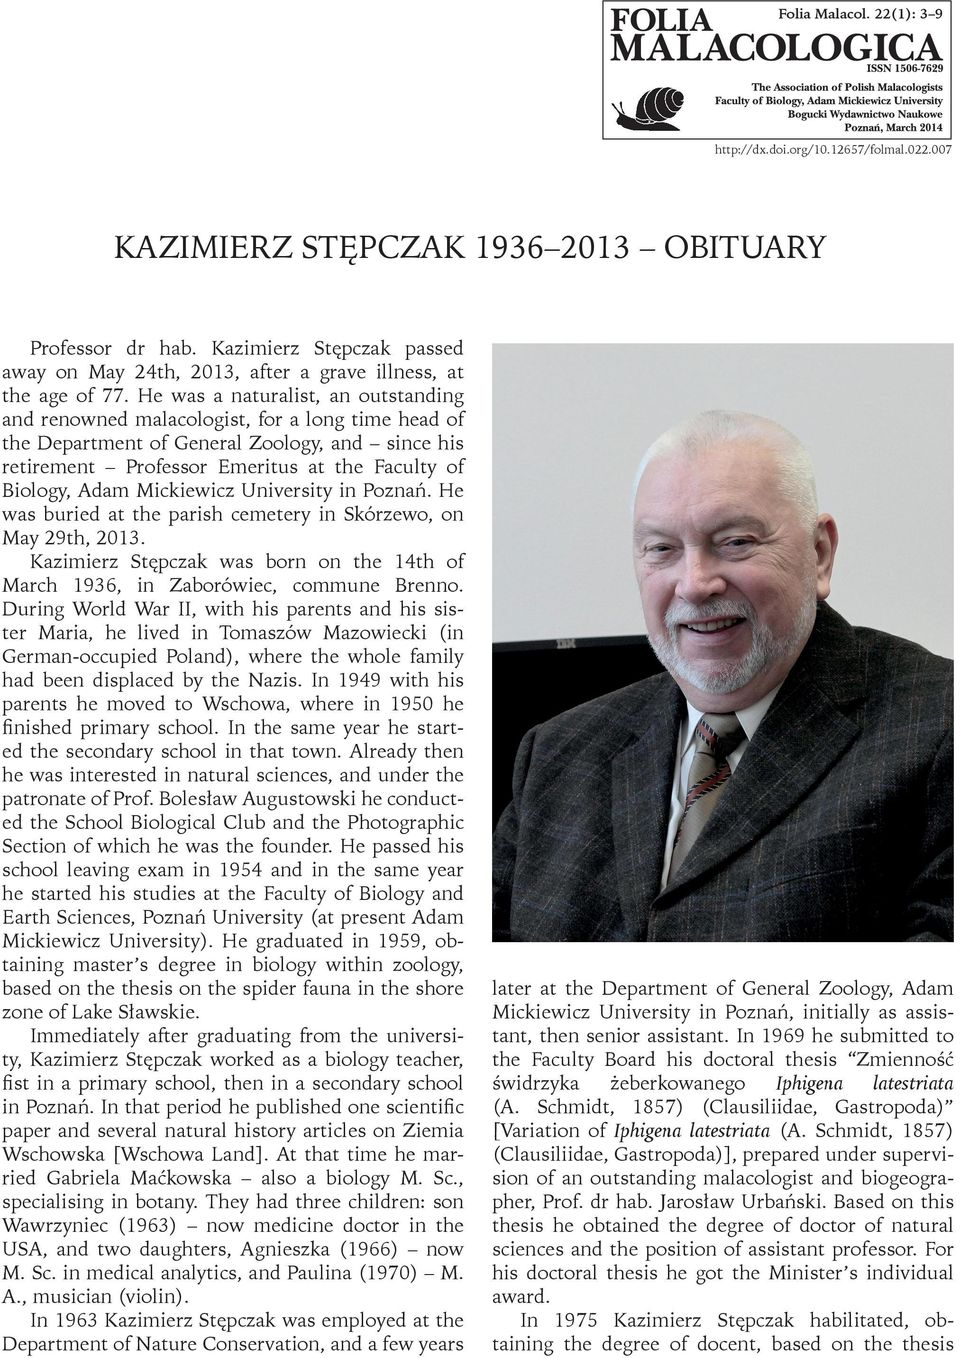 He was a naturalist, an outstanding and renowned malacologist, for a long time head of the Department of General Zoology, and since his retirement Professor Emeritus at the Faculty of Biology, Adam